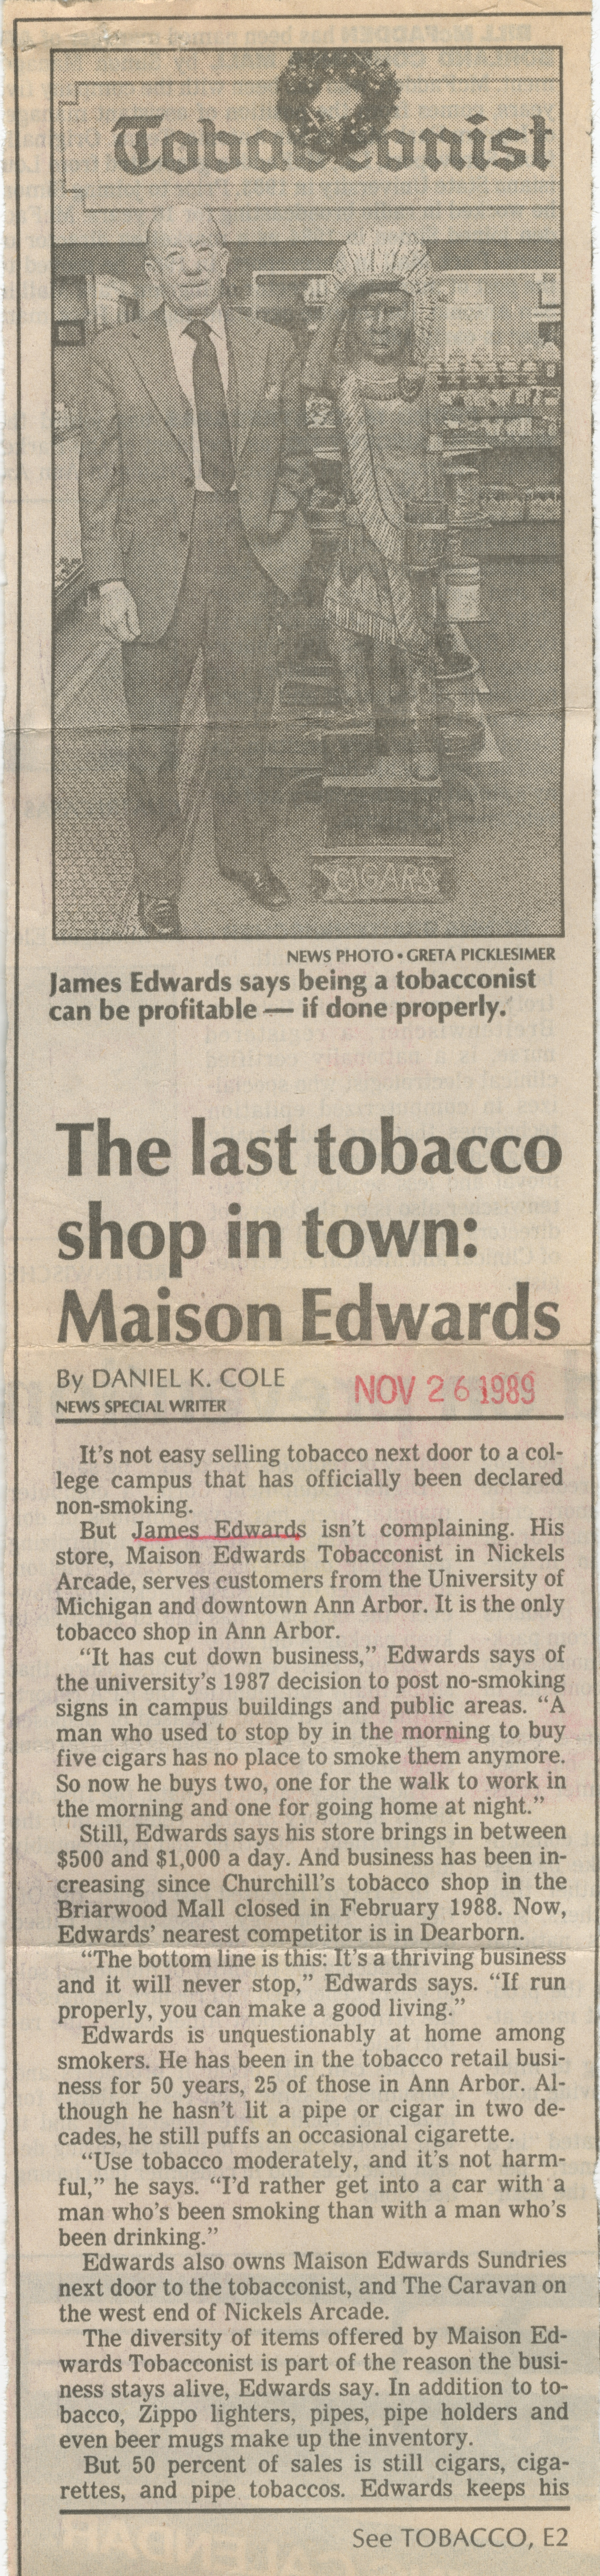 The last tobacco shop in town: Maison Edwards image